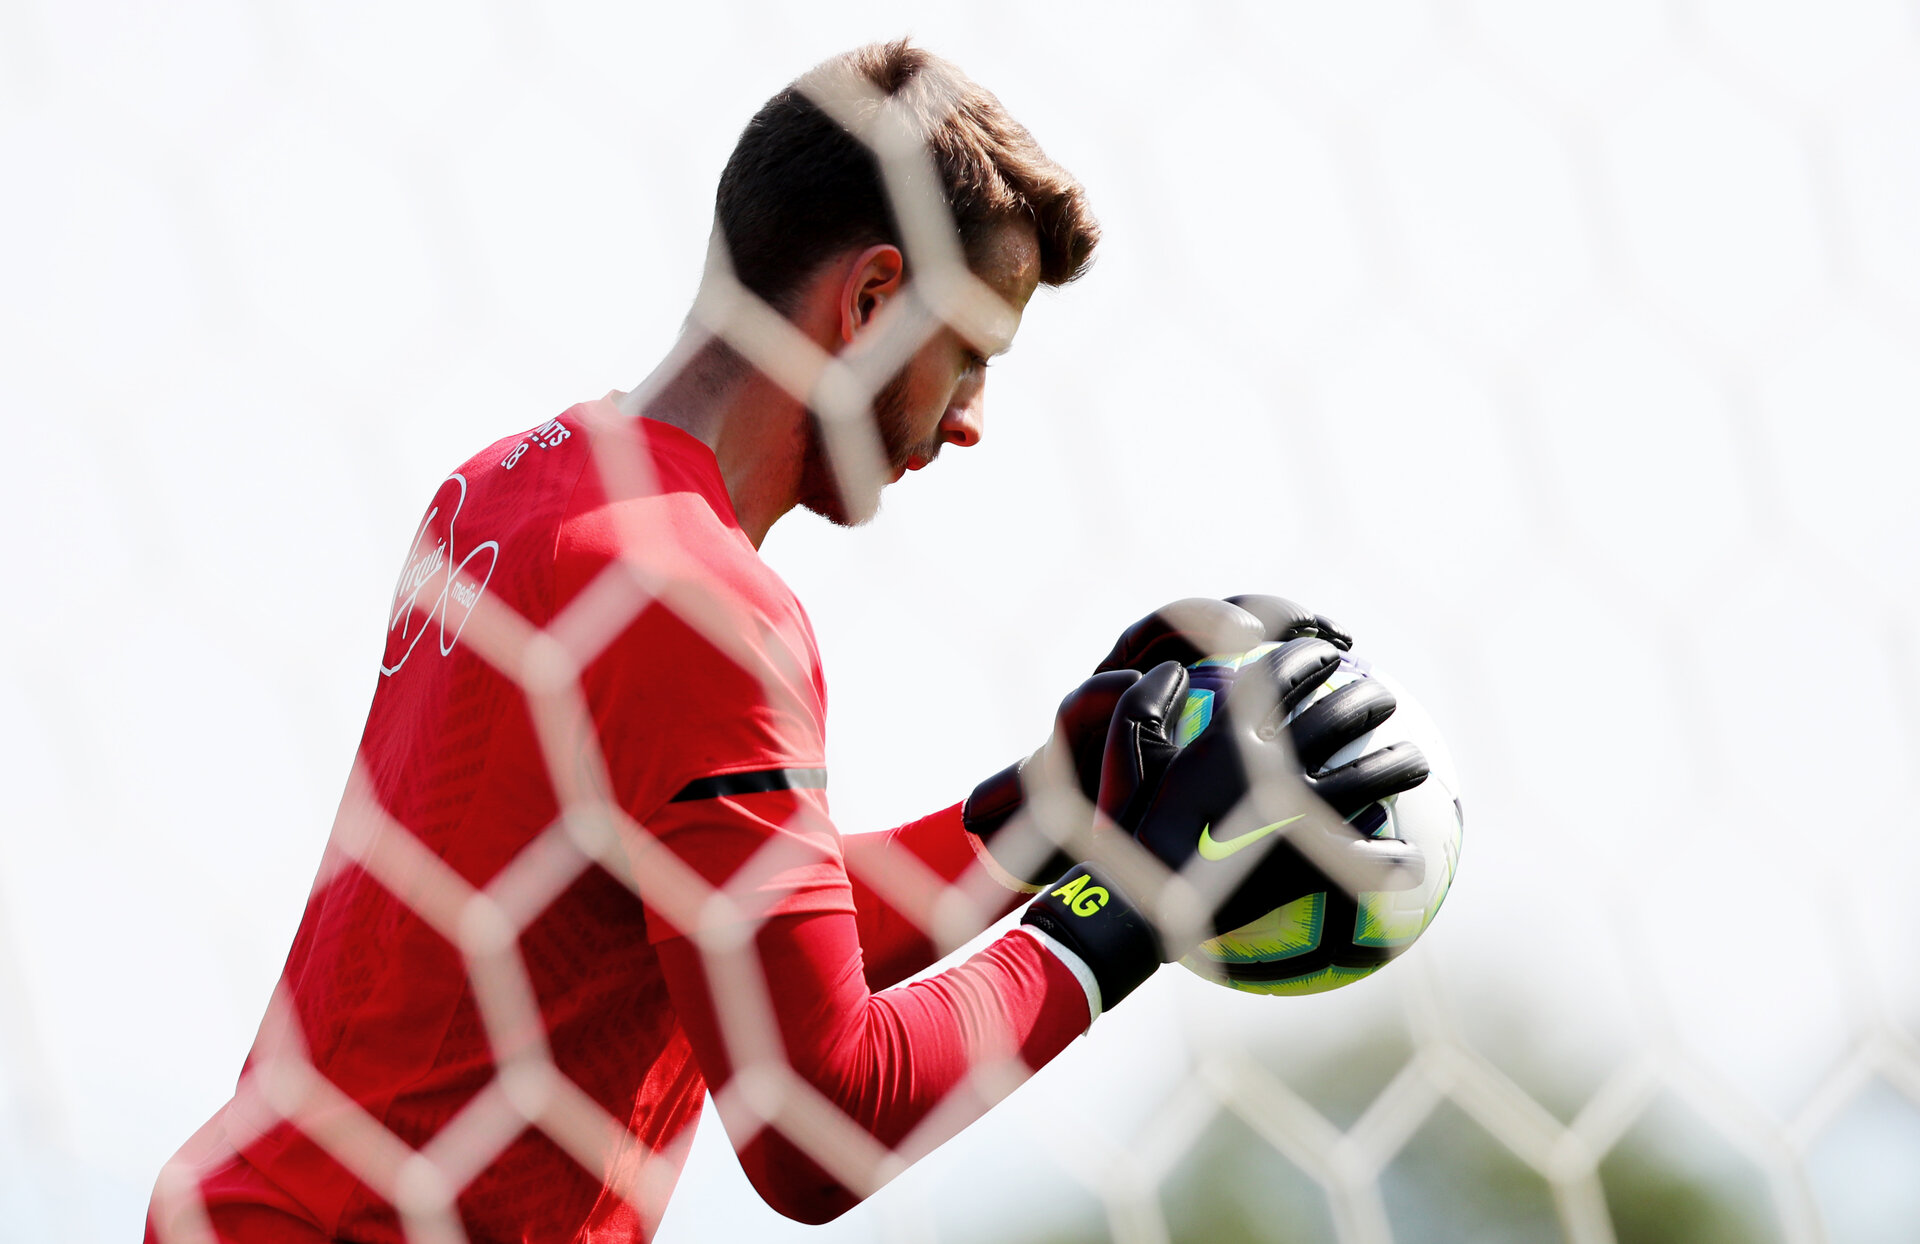 EVIAN-LES-BAINS, FRANCE - JULY 24: Angus Gunn during day 2 of Southampton FC's pre-season training camp on July 24, 2018 in Evian-les-Bains, France. (Photo by Matt Watson/Southampton FC via Getty Images)